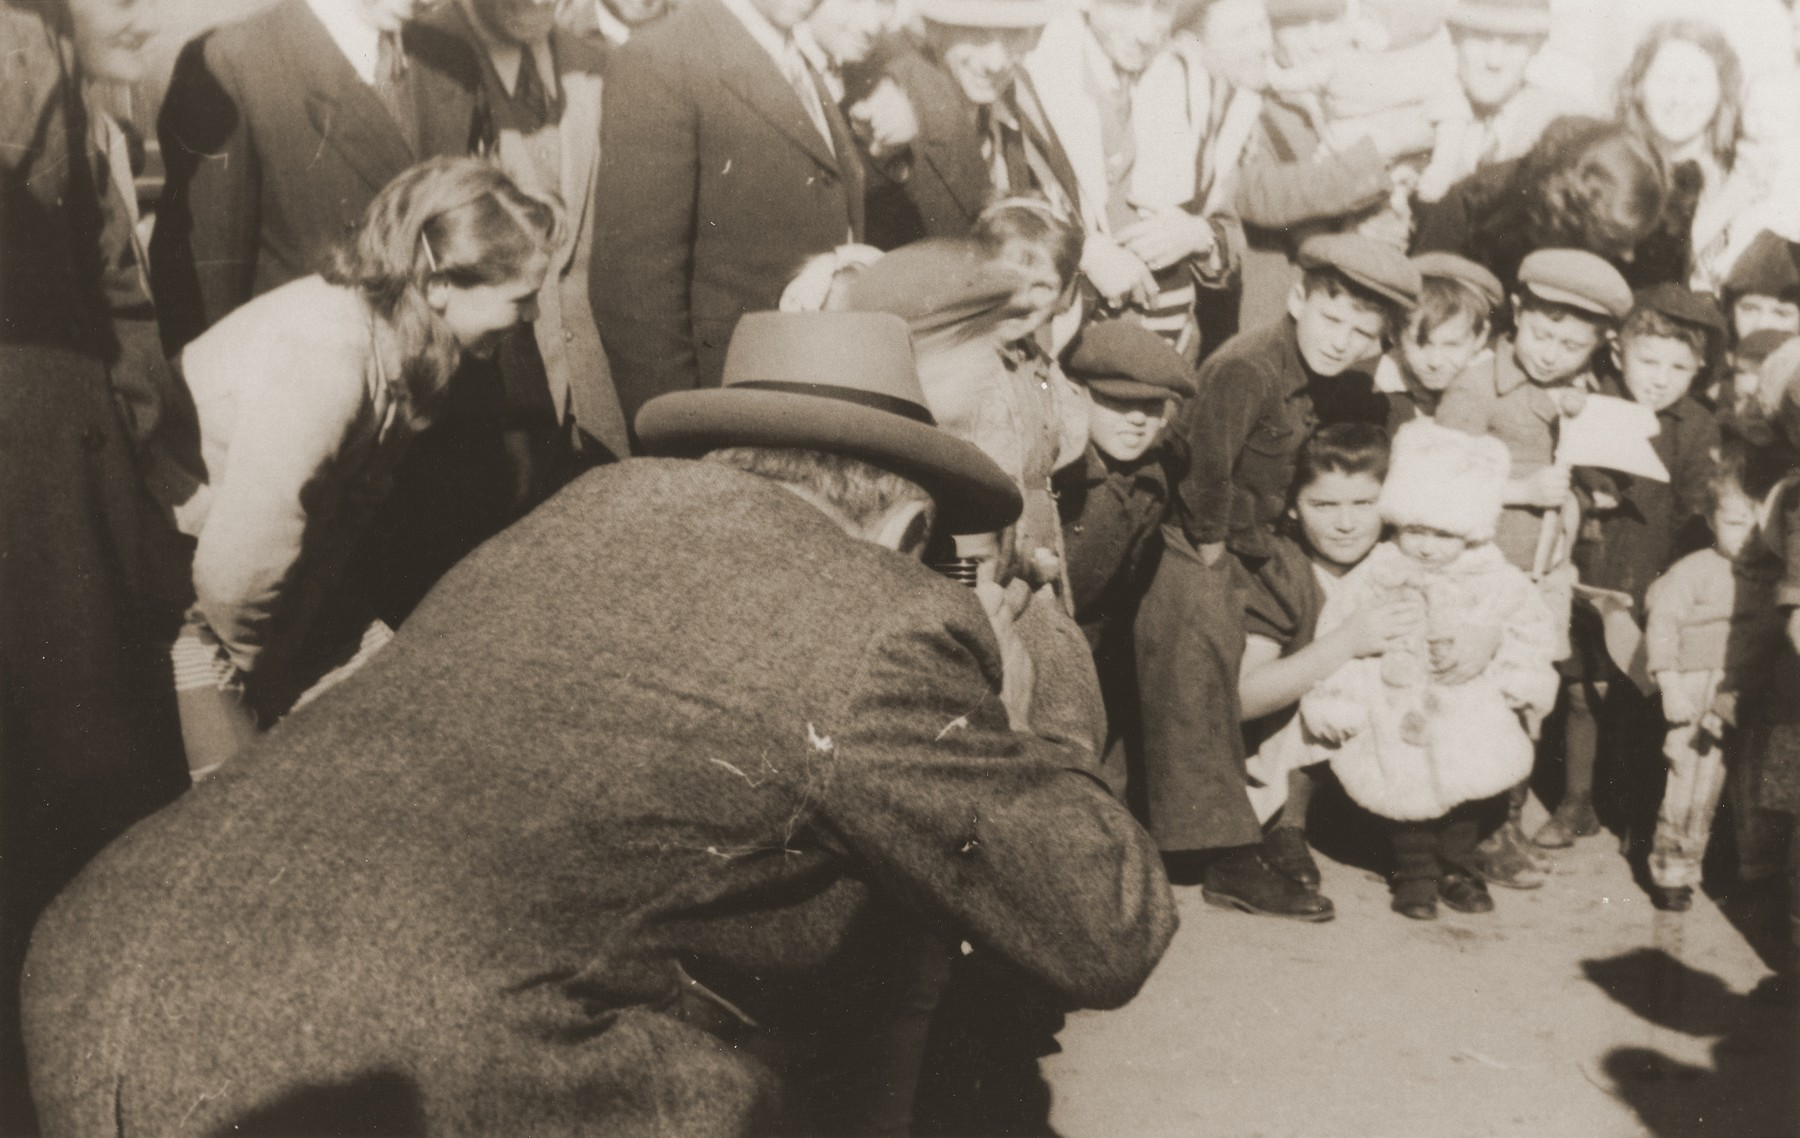 Rabbi Philip Bernstein, adviser on Jewish affairs to the U.S. Army commander in Europe, photographs a group of children in an unidentified DP camp.